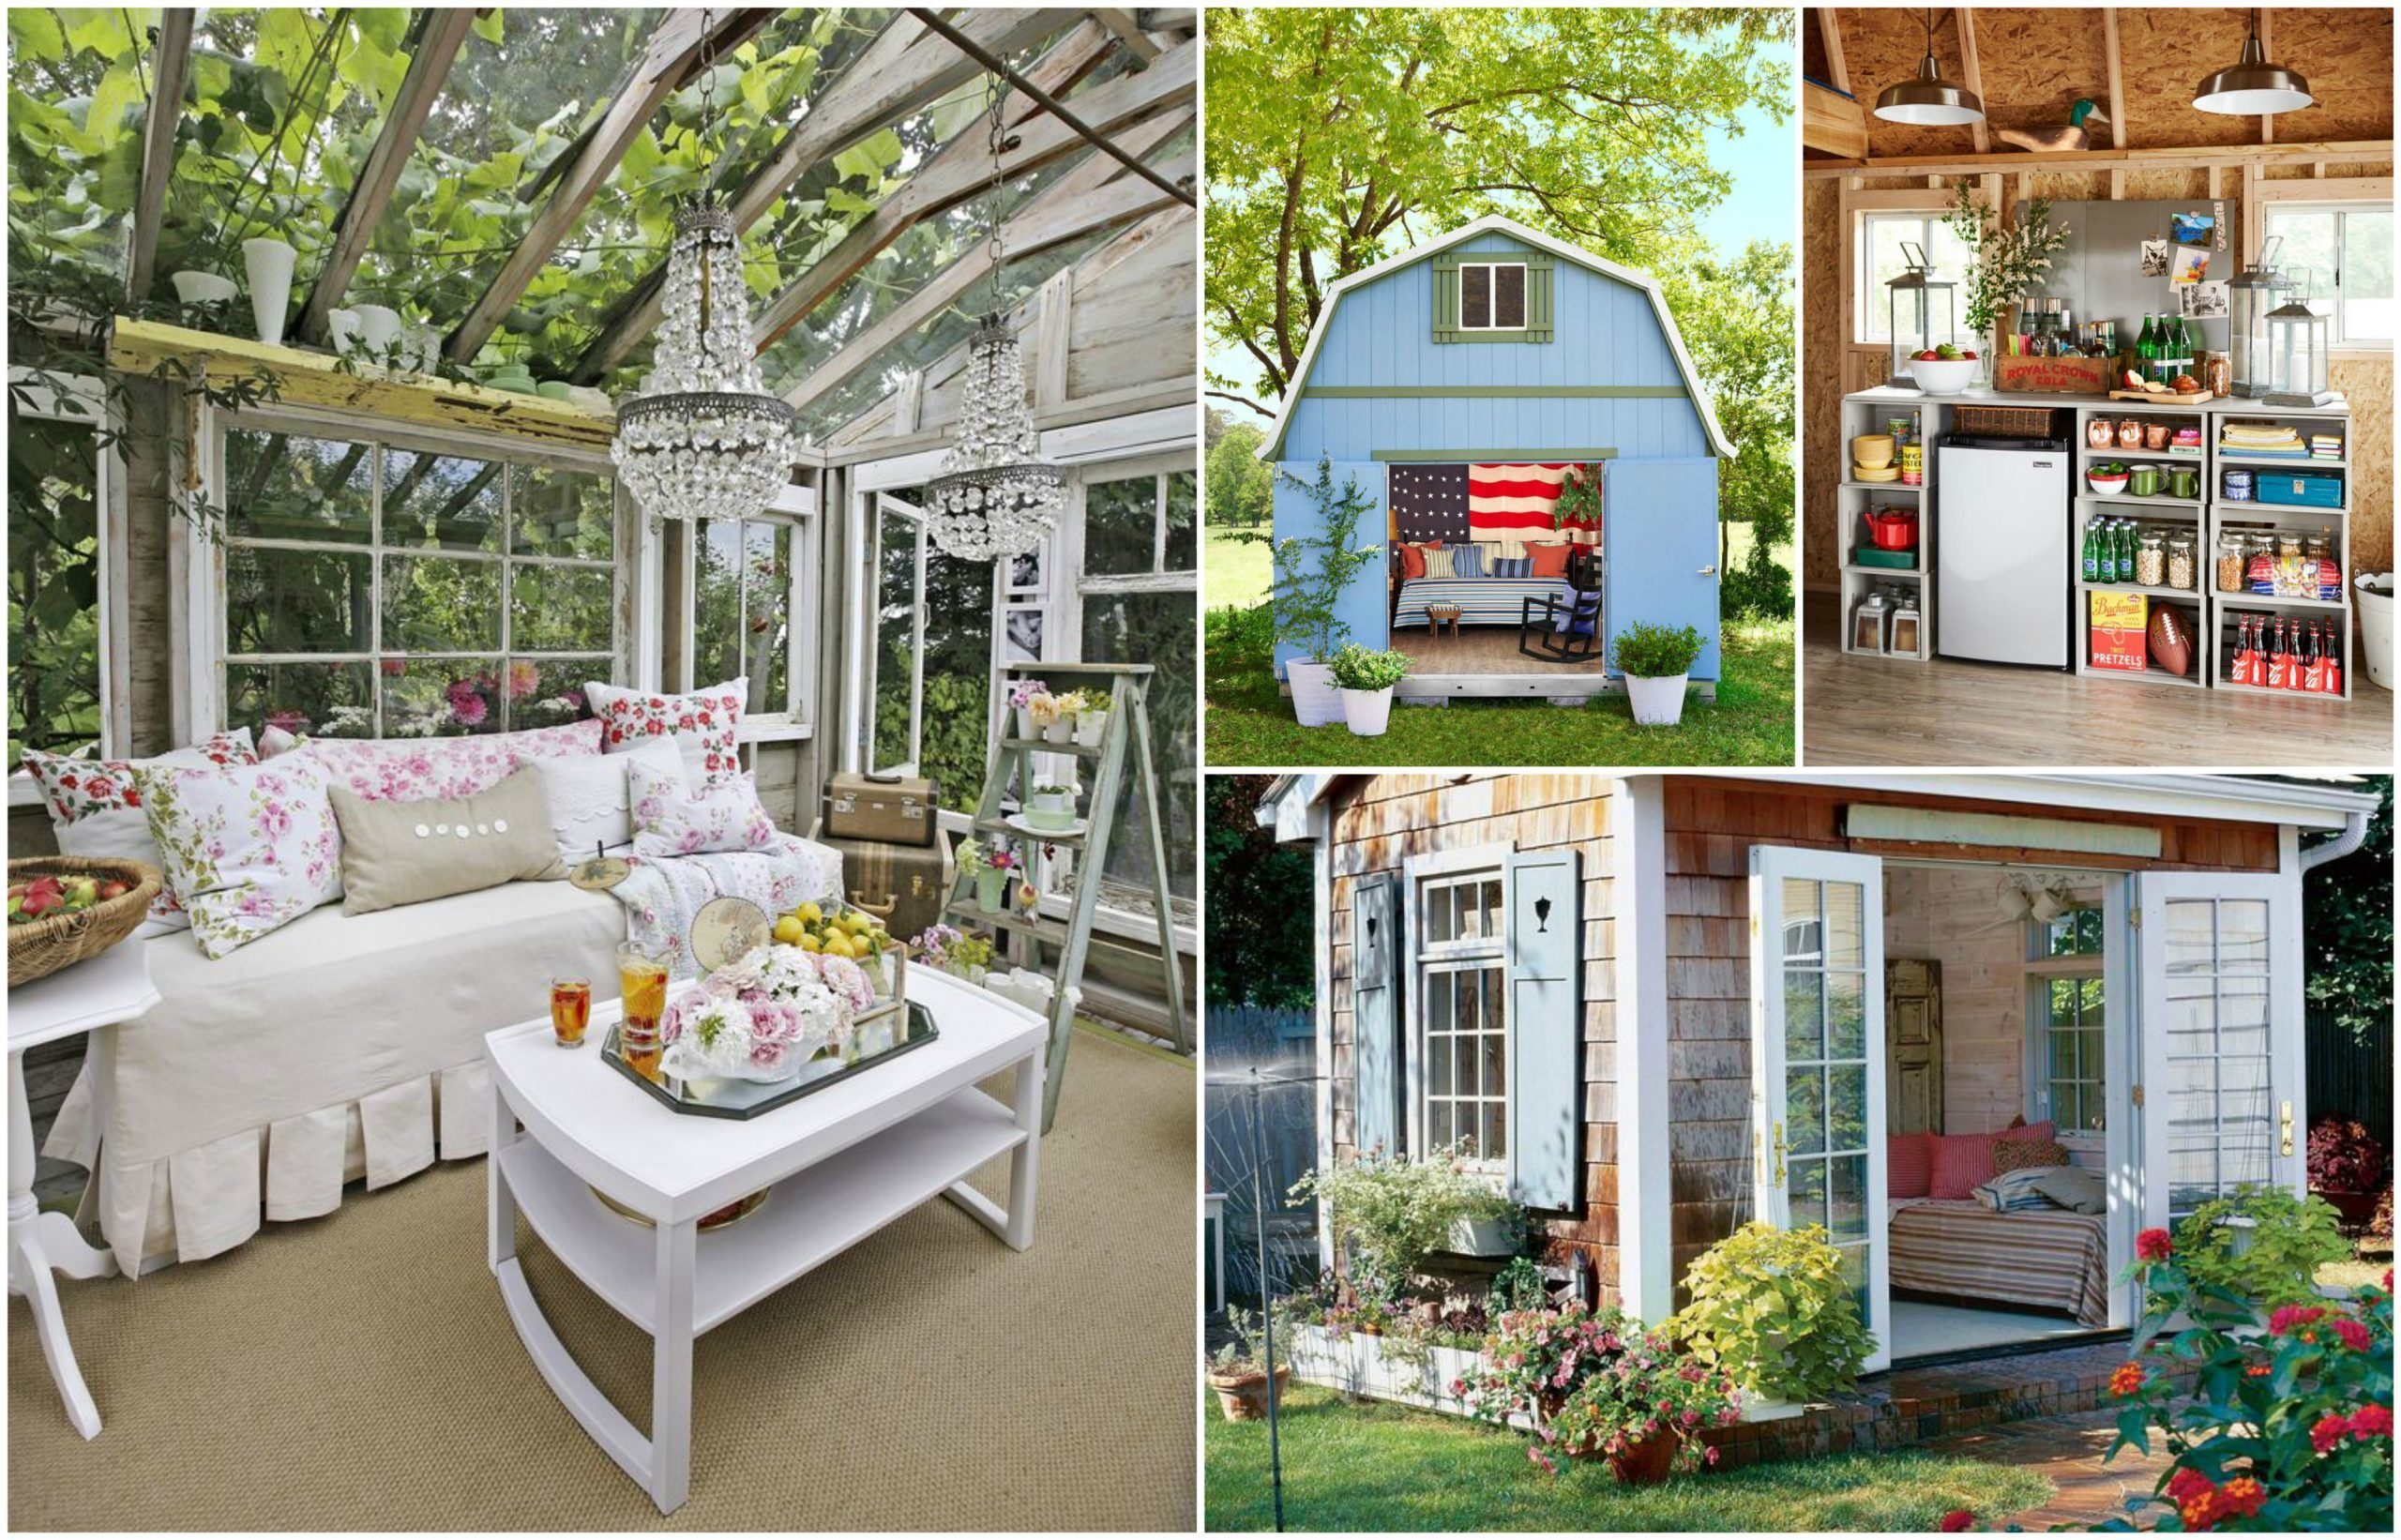 Some Helpful Steps To Create Your Own She Shed In The ...